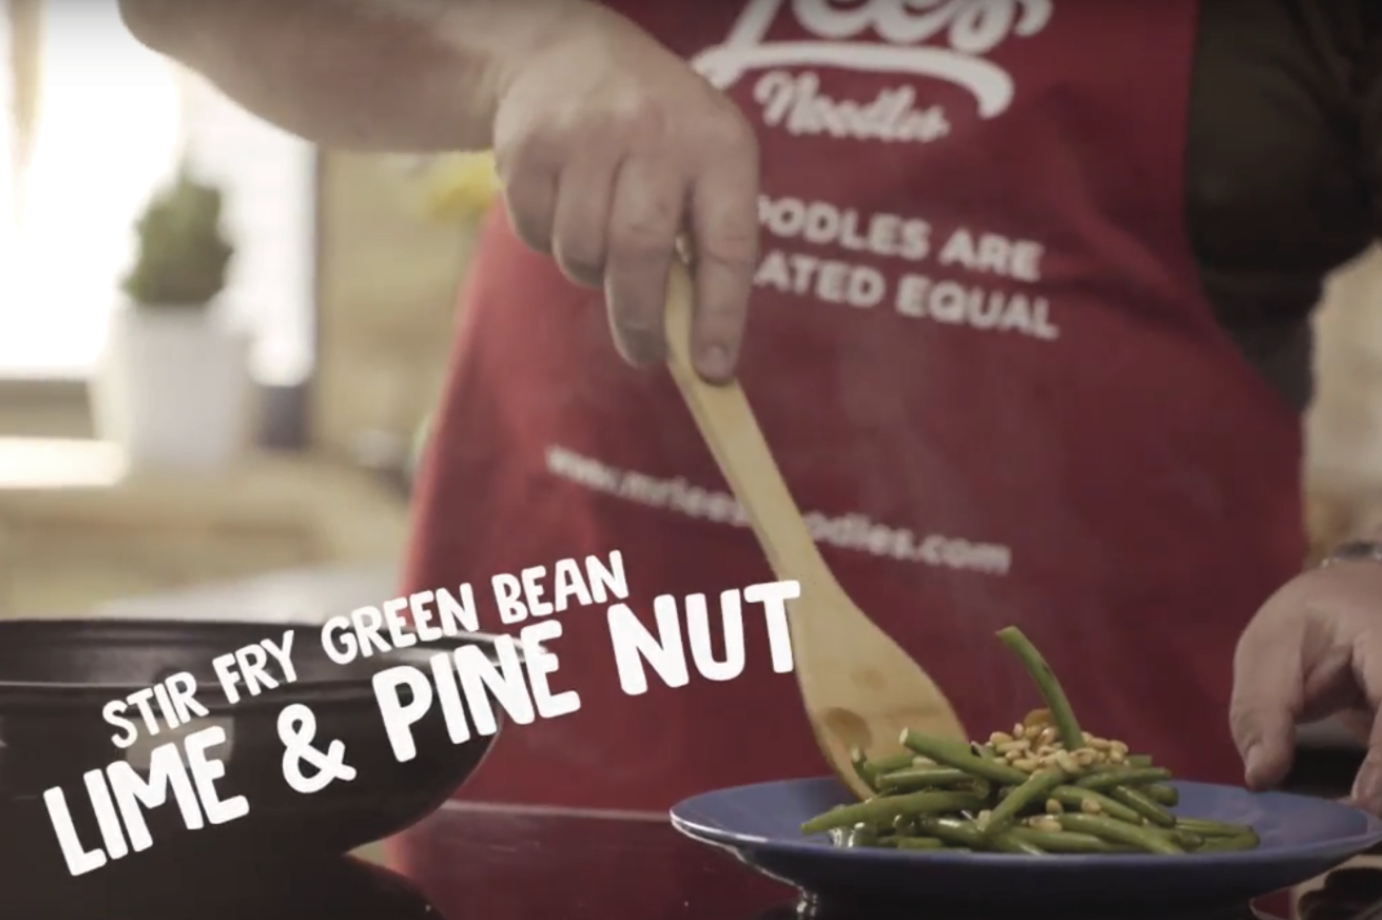 Recipe for stir-fried green beans with line and pine nuts on plate